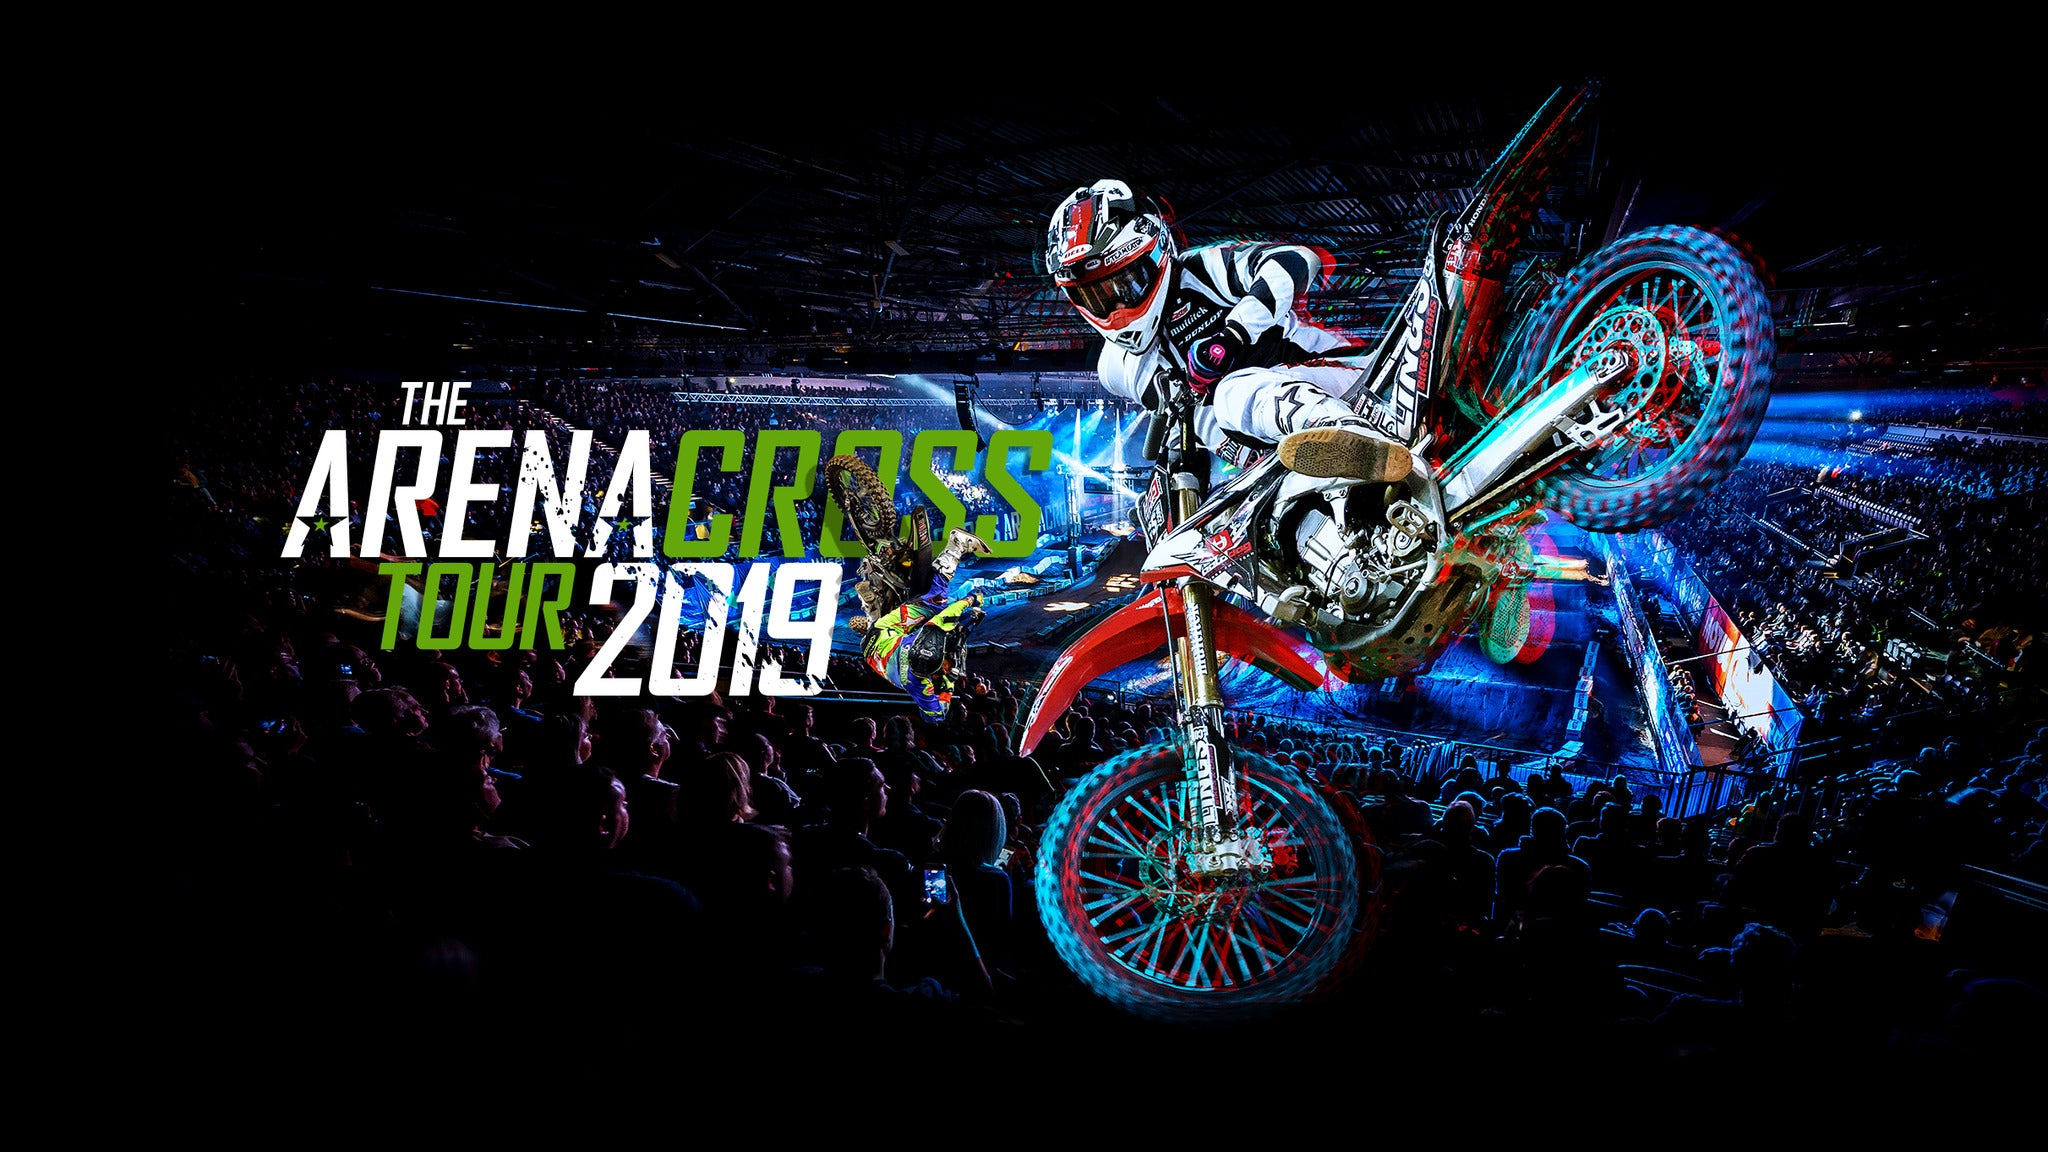 The Arenacross Tour - Friday Night FlyDSA Arena (Sheffield Arena) Seating Plan